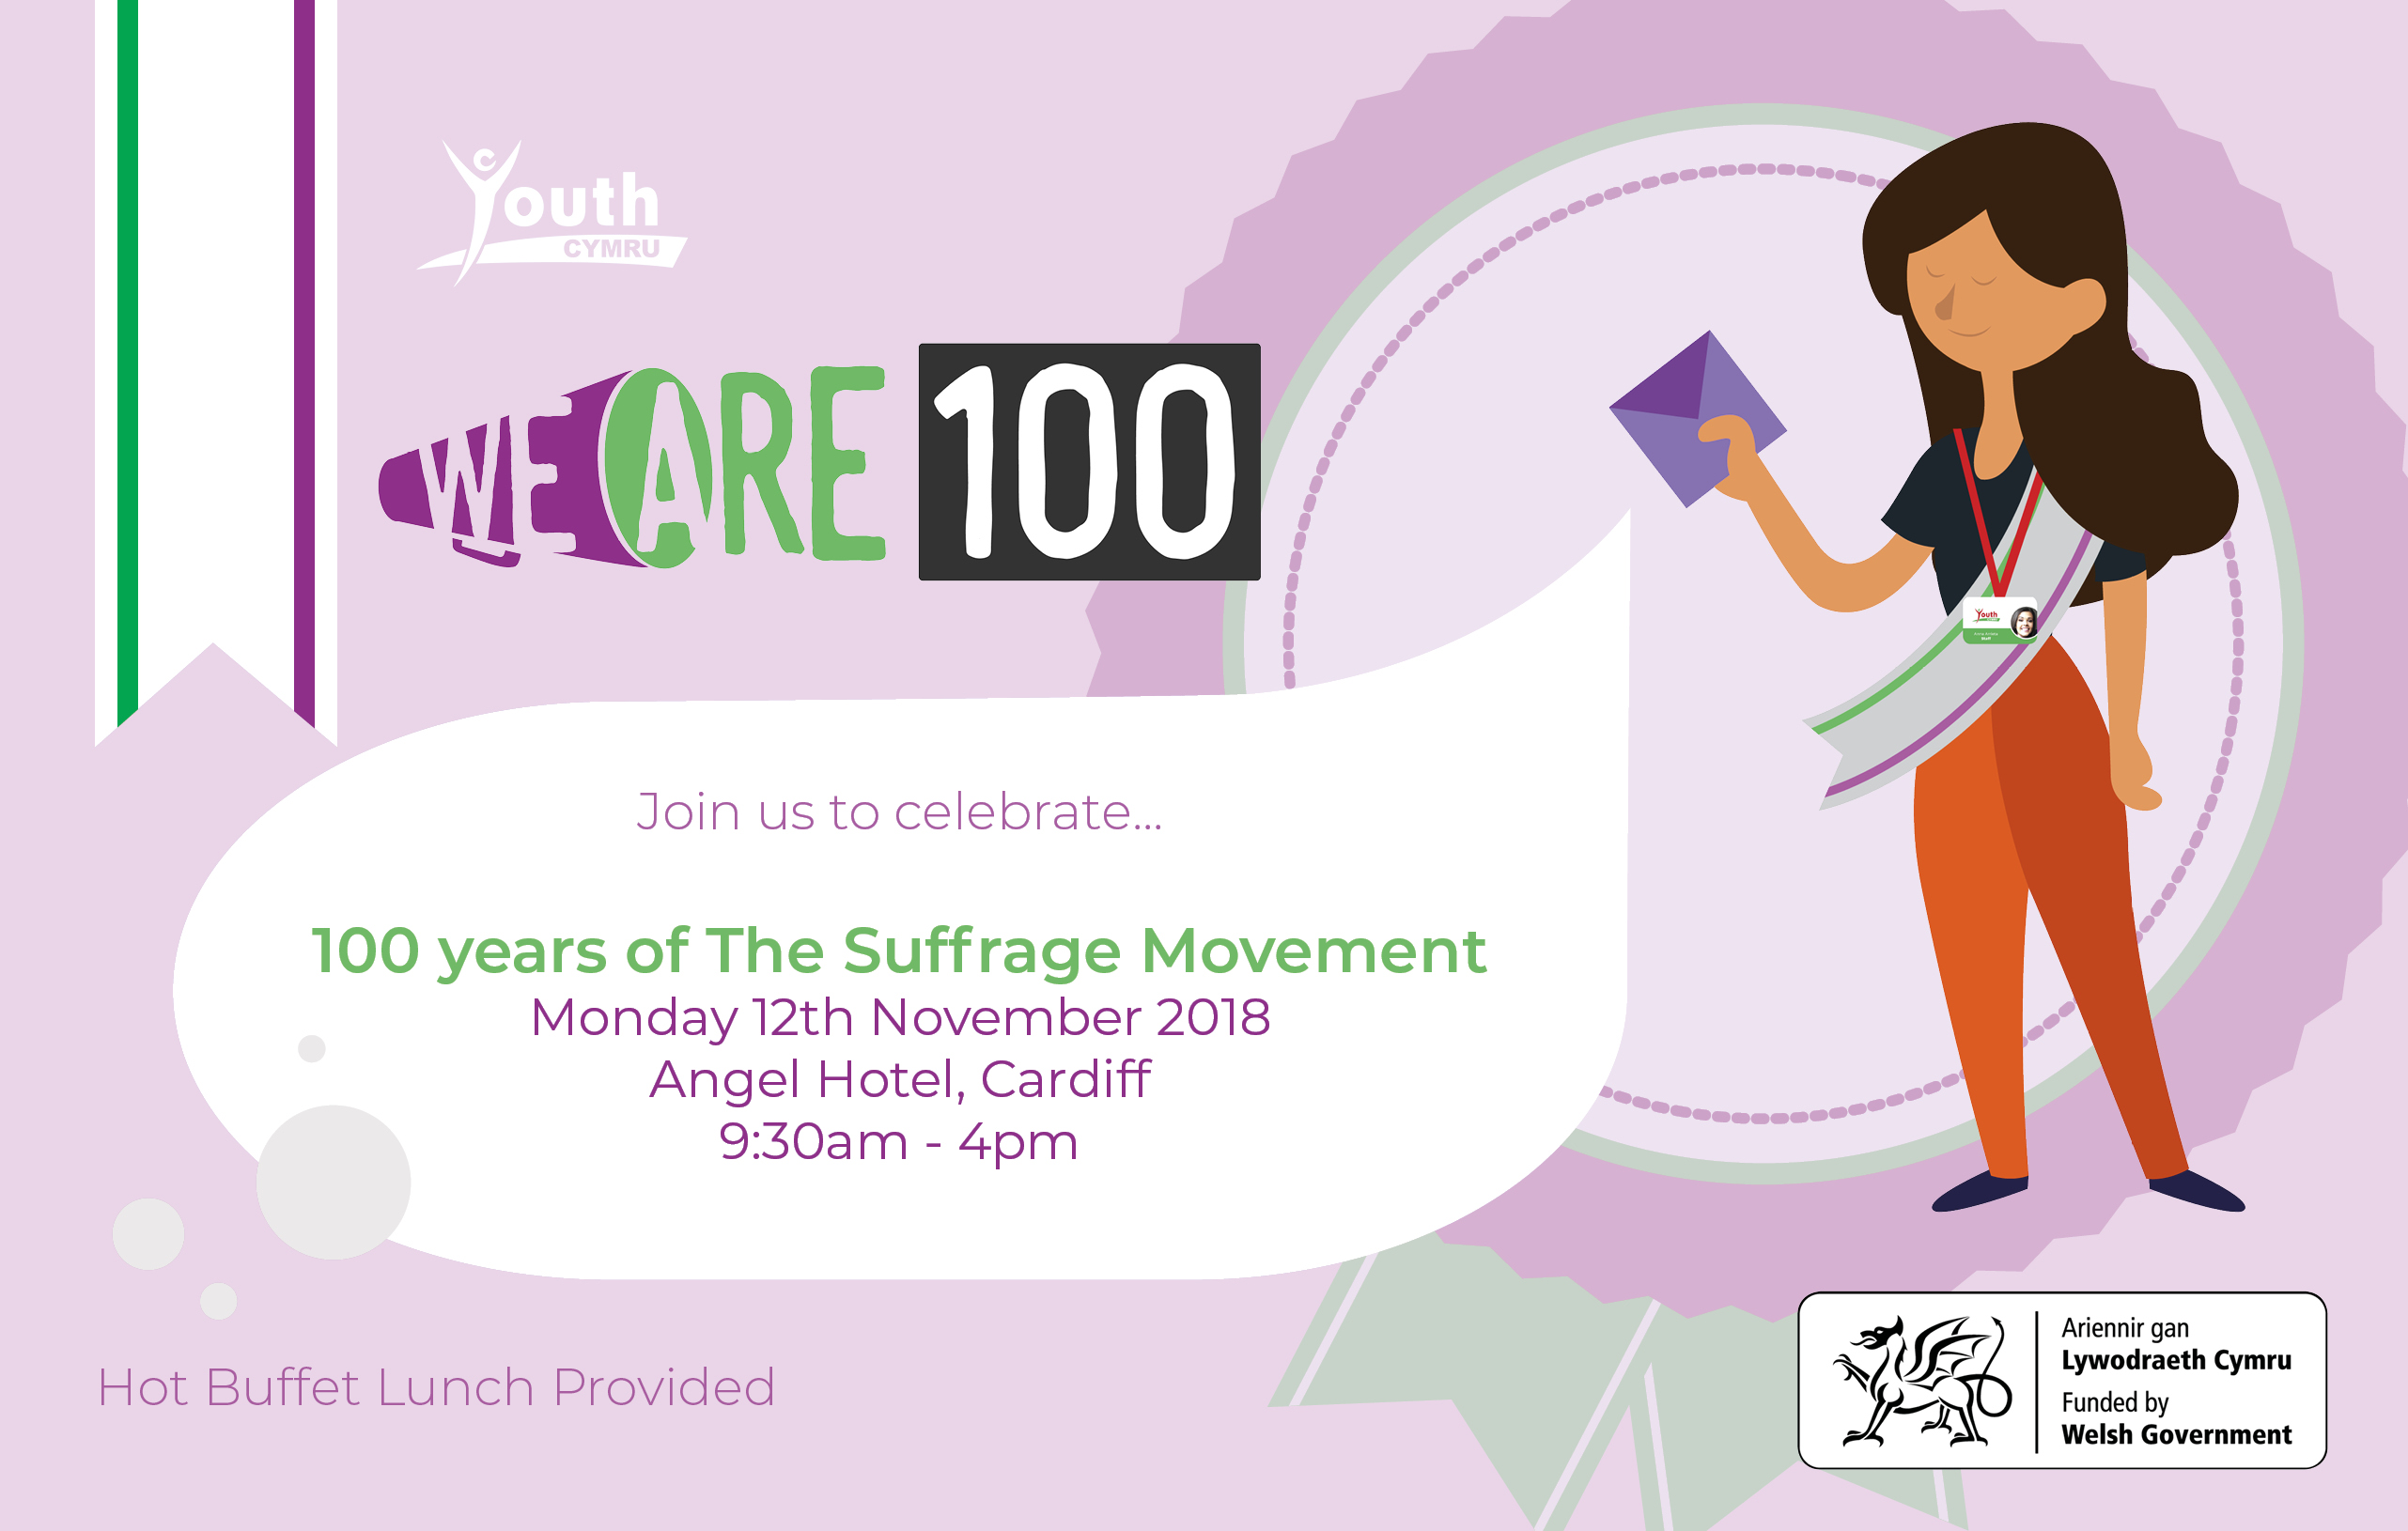 Celebrating 100 years of The Suffrage Movement